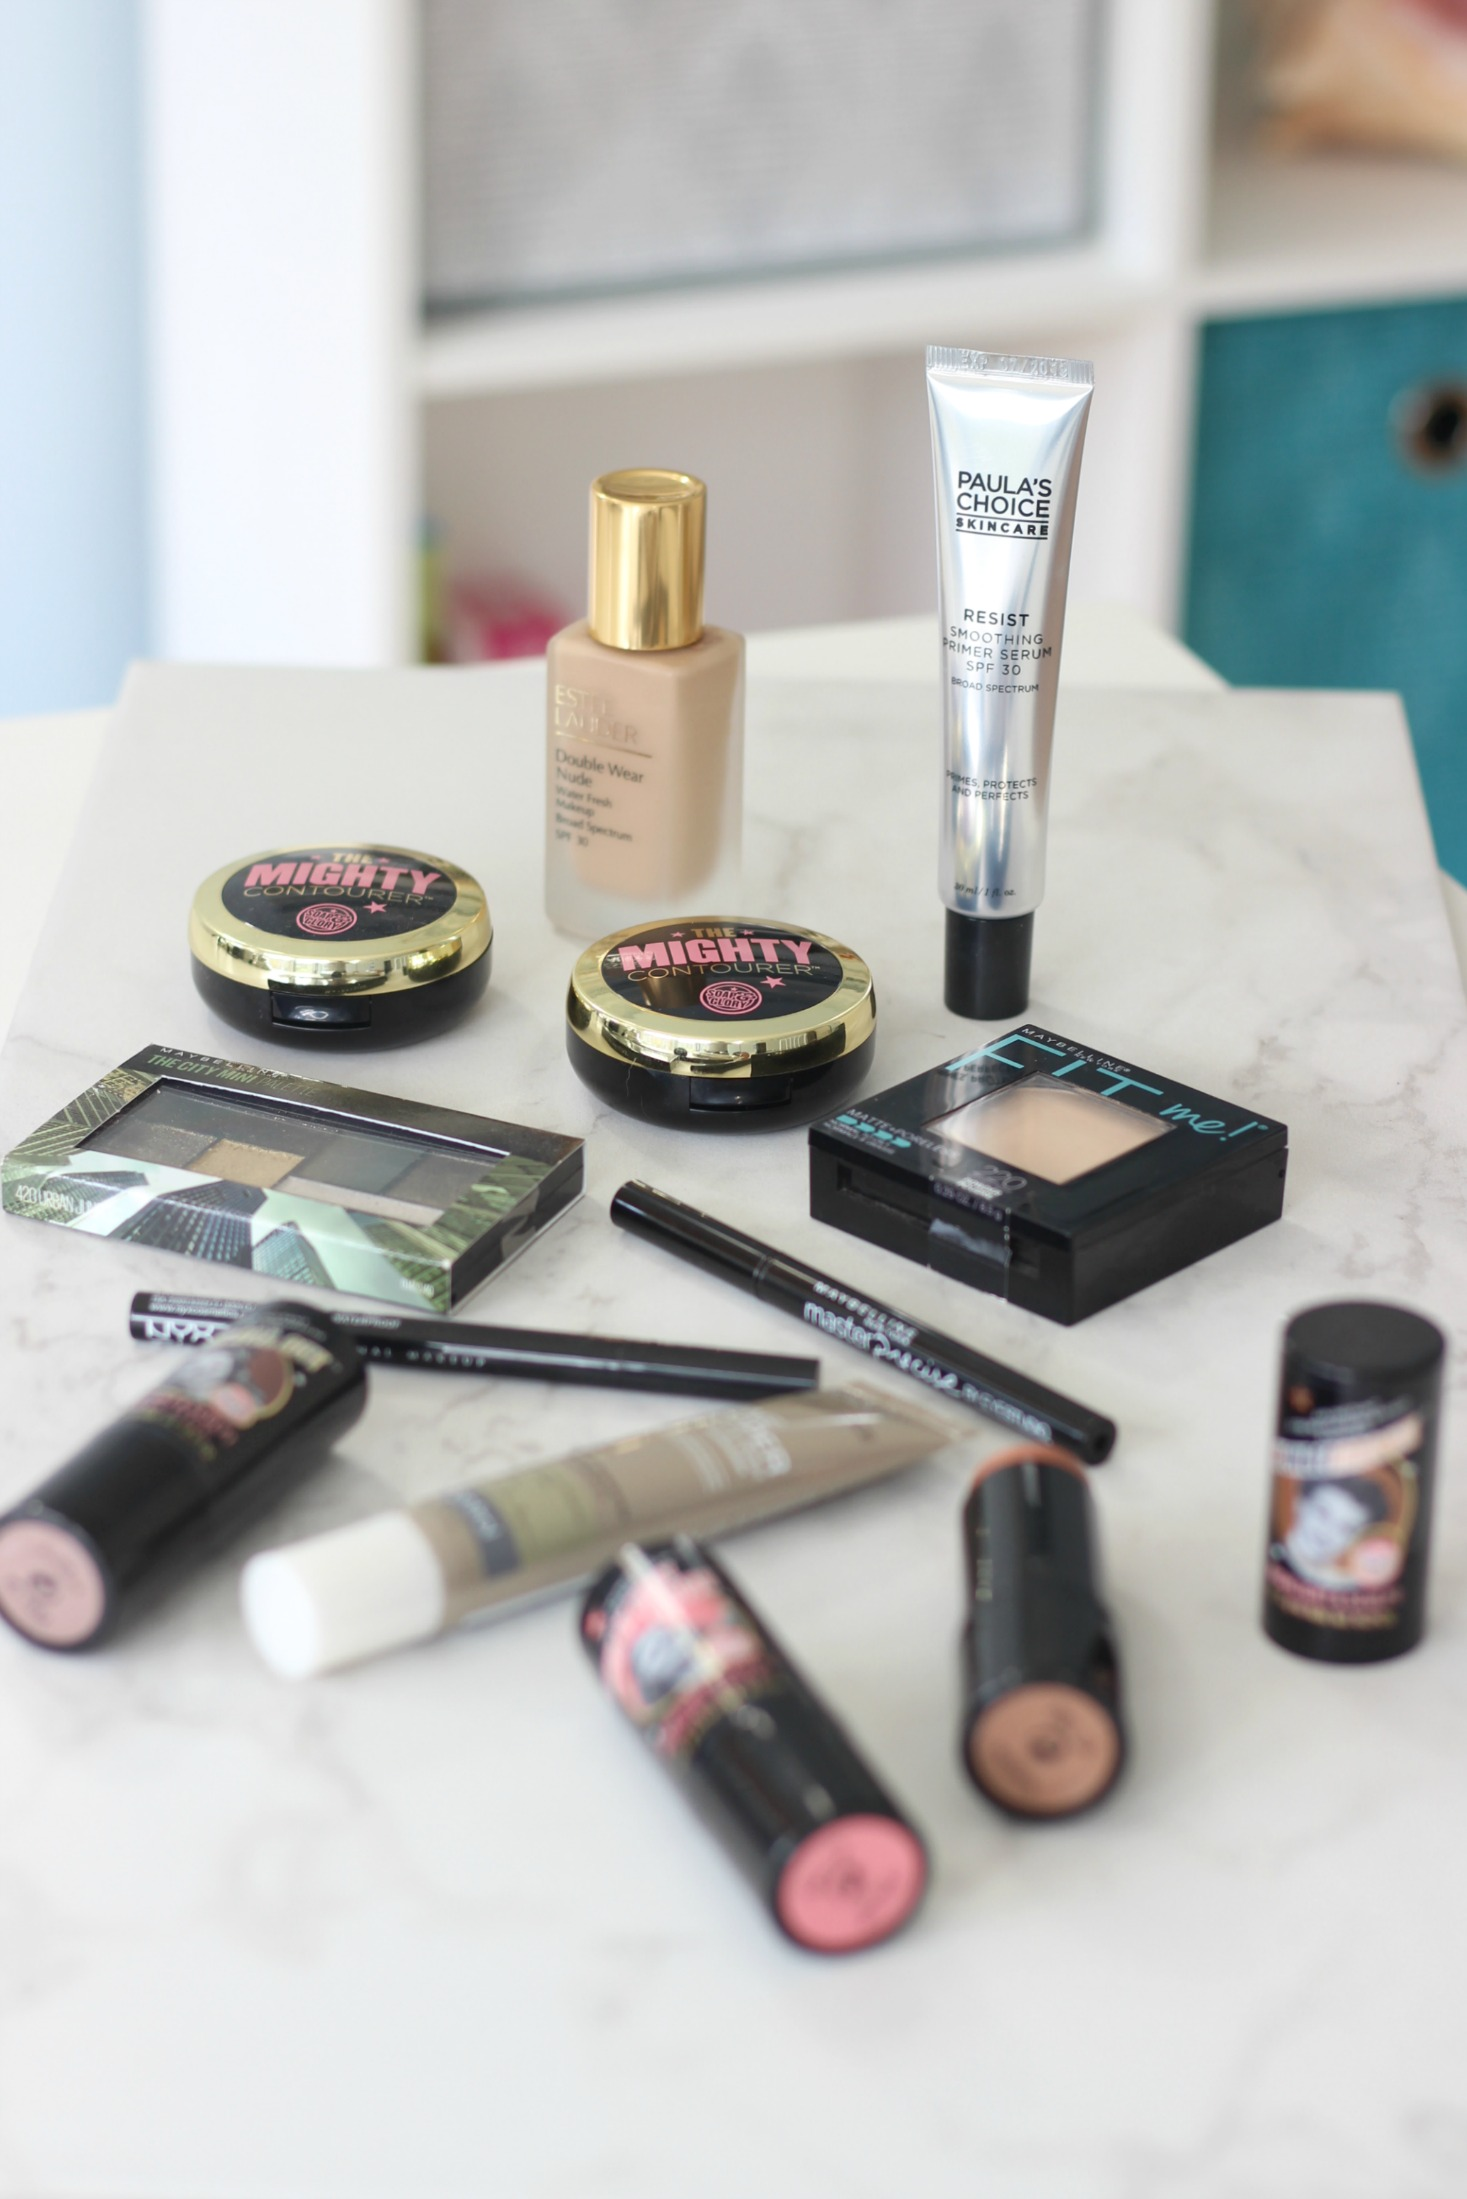 new beauty products i'm currently testing | Estee Lauder Double Wear Nude Water Fresh, NYX Epic Ink Liner, Maybelline Master Precise Eye Liner, Paula's Choice Smoothing Primer, Paula's Choice Shine Stopper, Maybelline City Mini Palette Urban Jungle